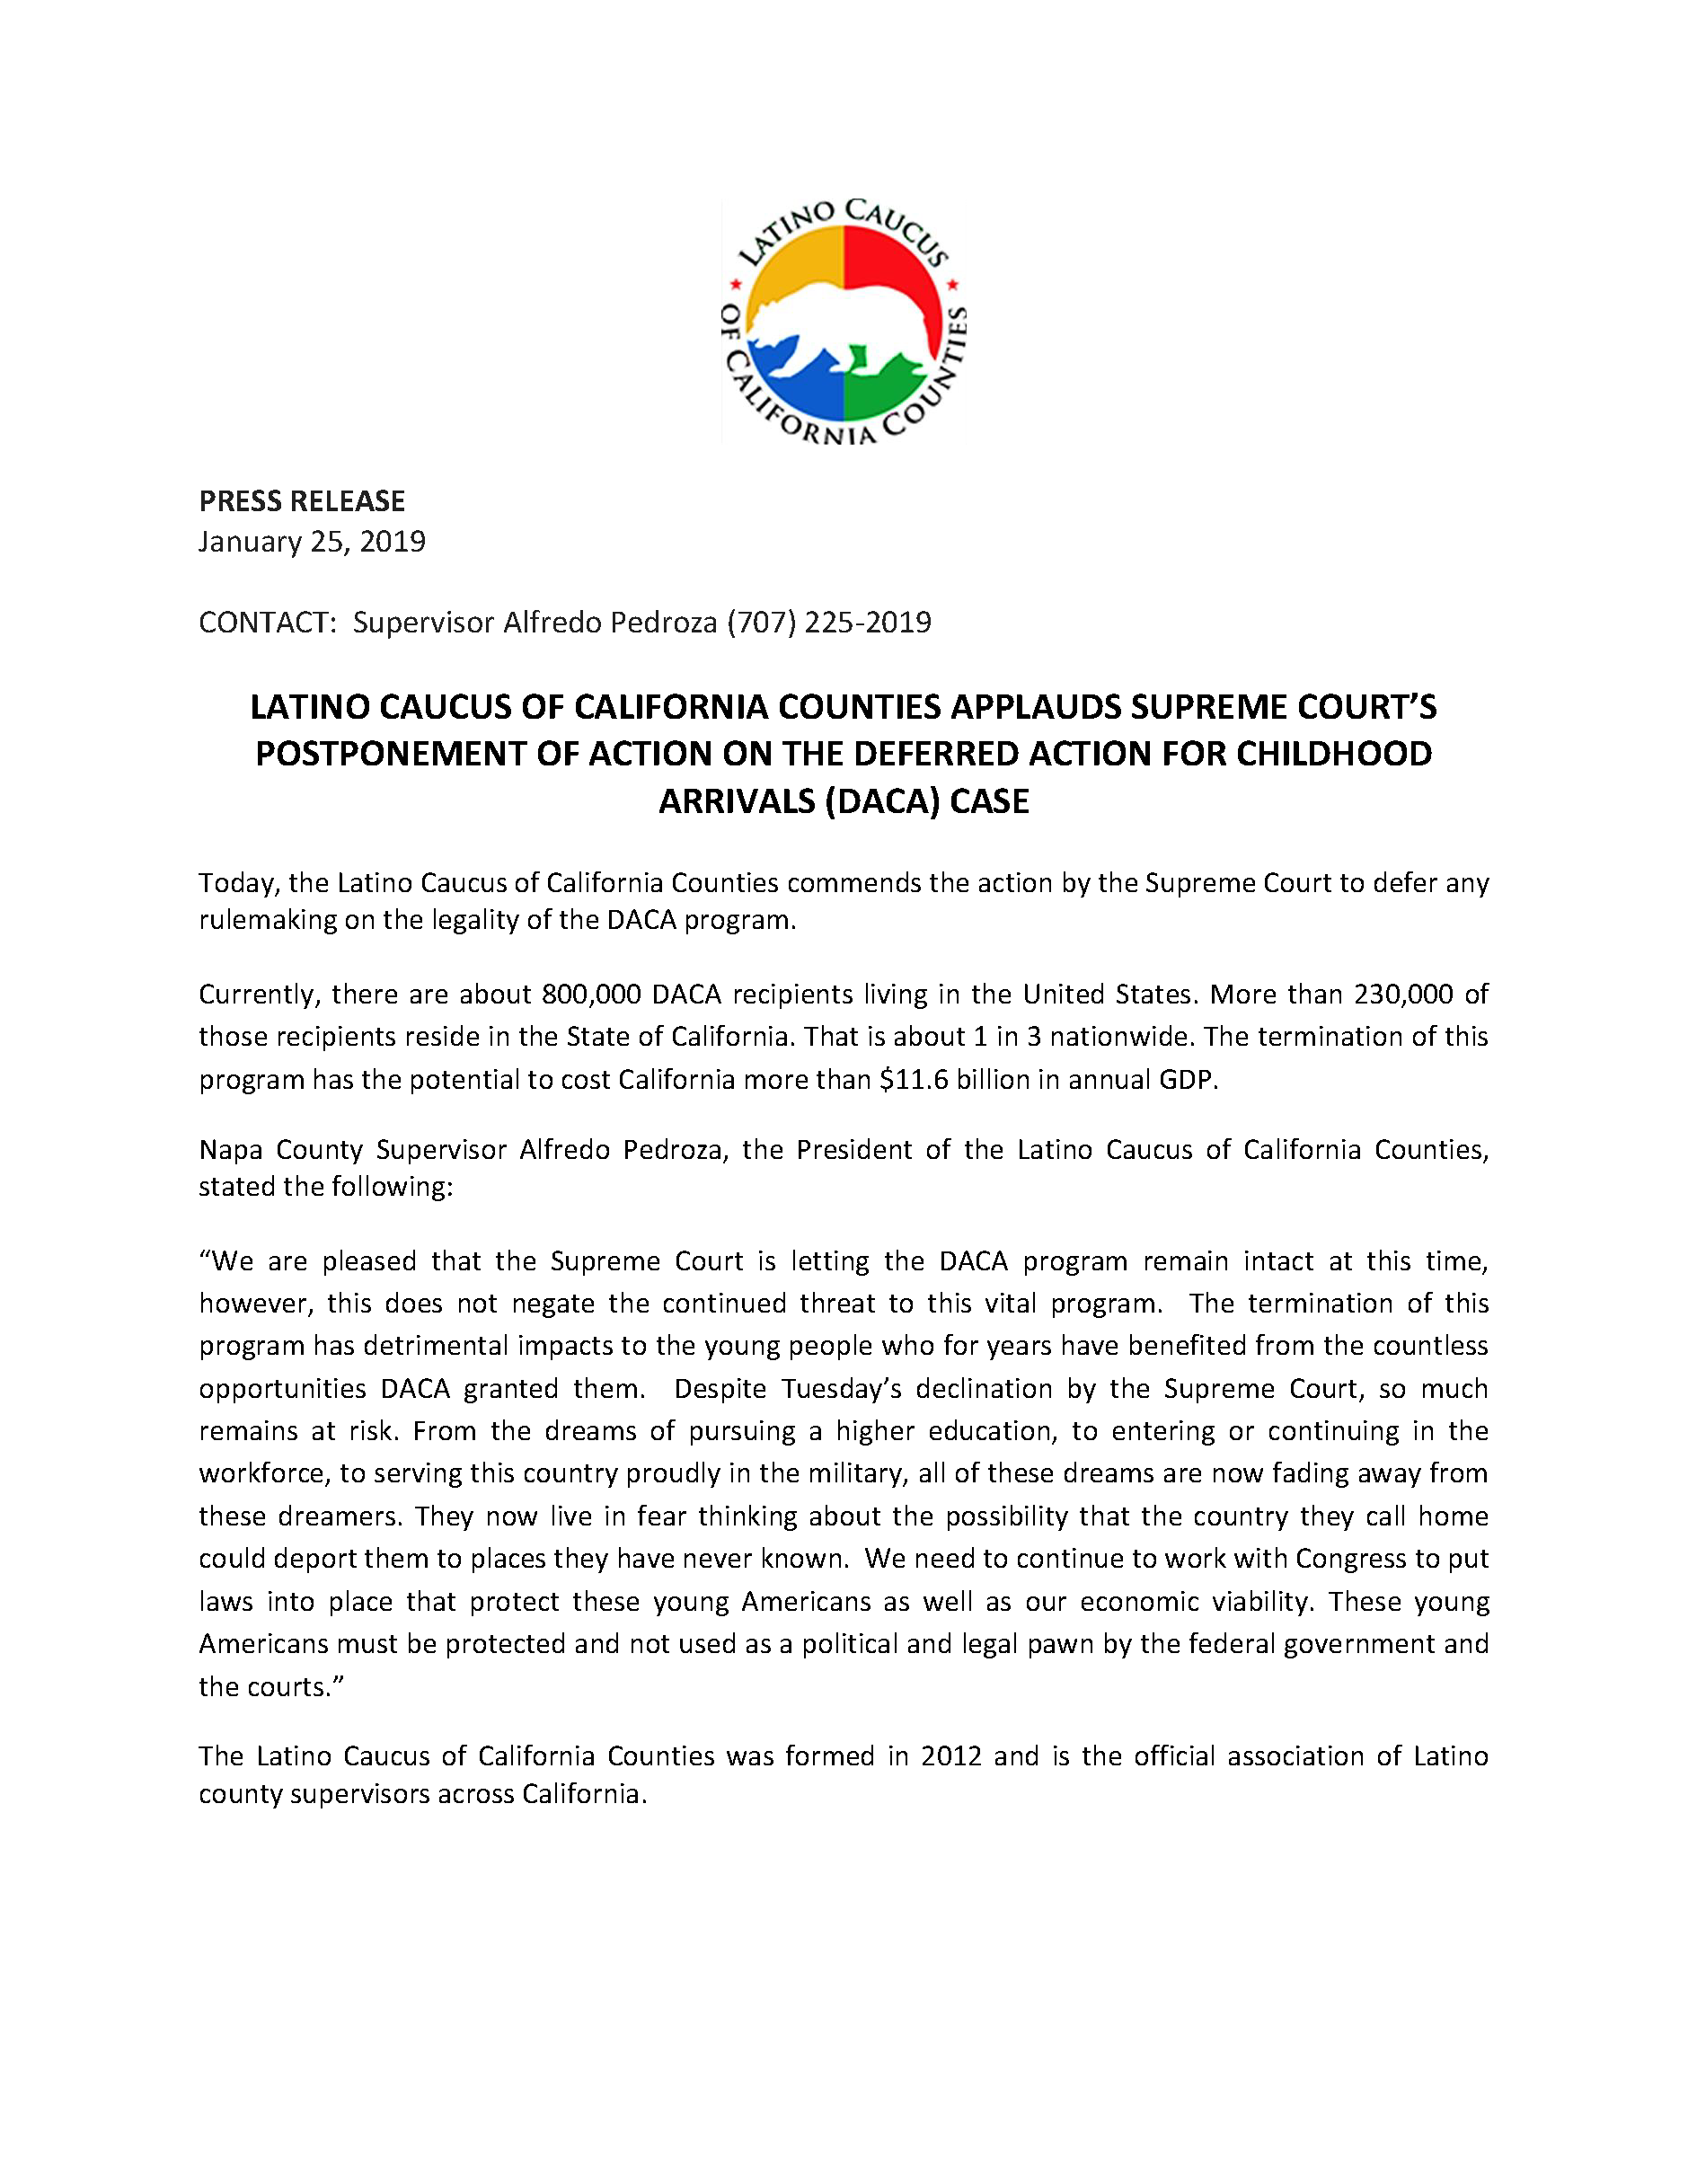 LCCC DACA Press Release (1) (1).png